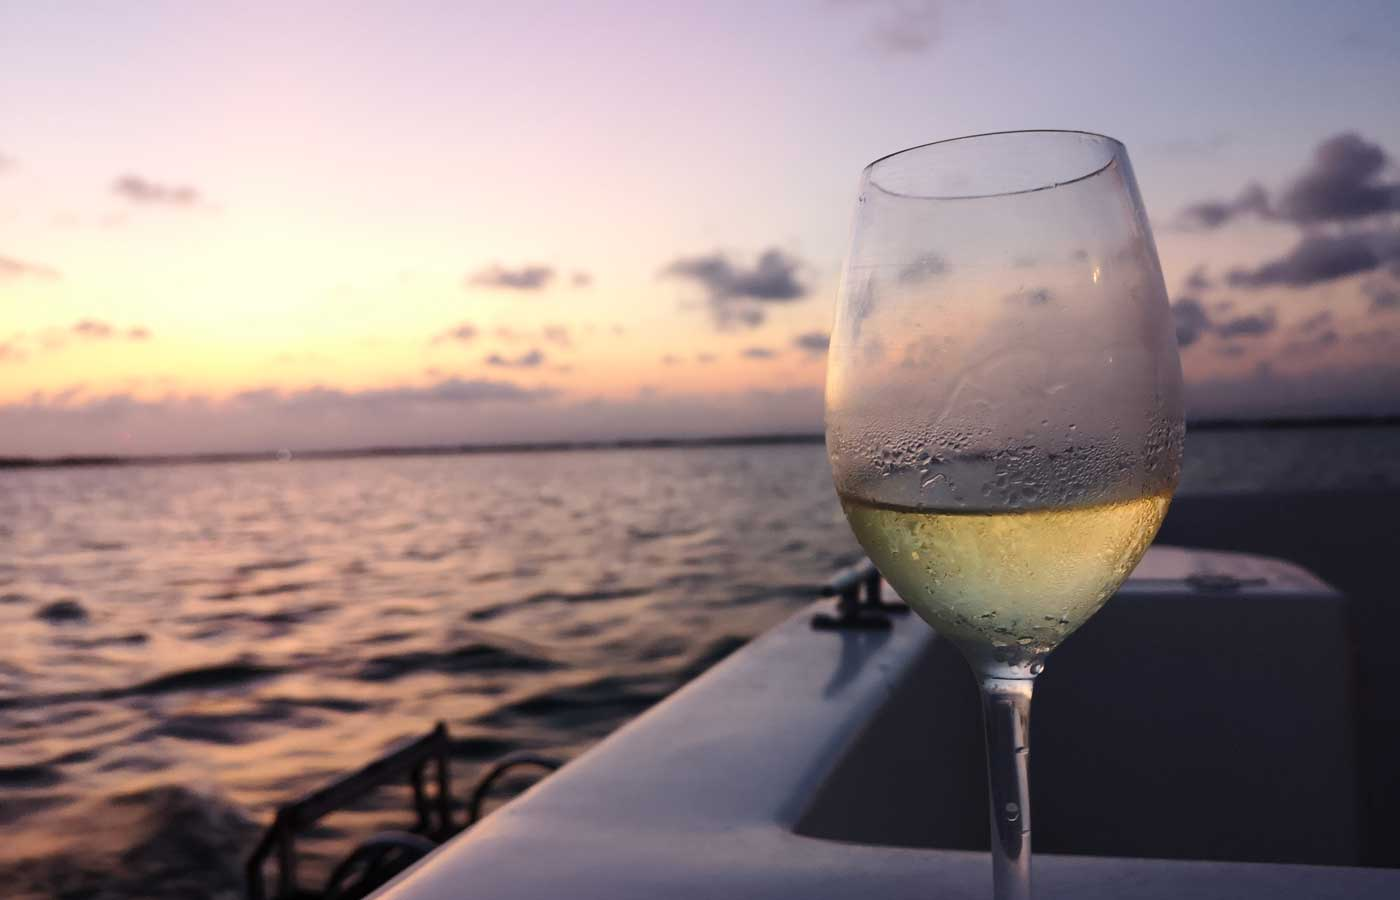 Sunset cruise in Placencia in Southern Belize